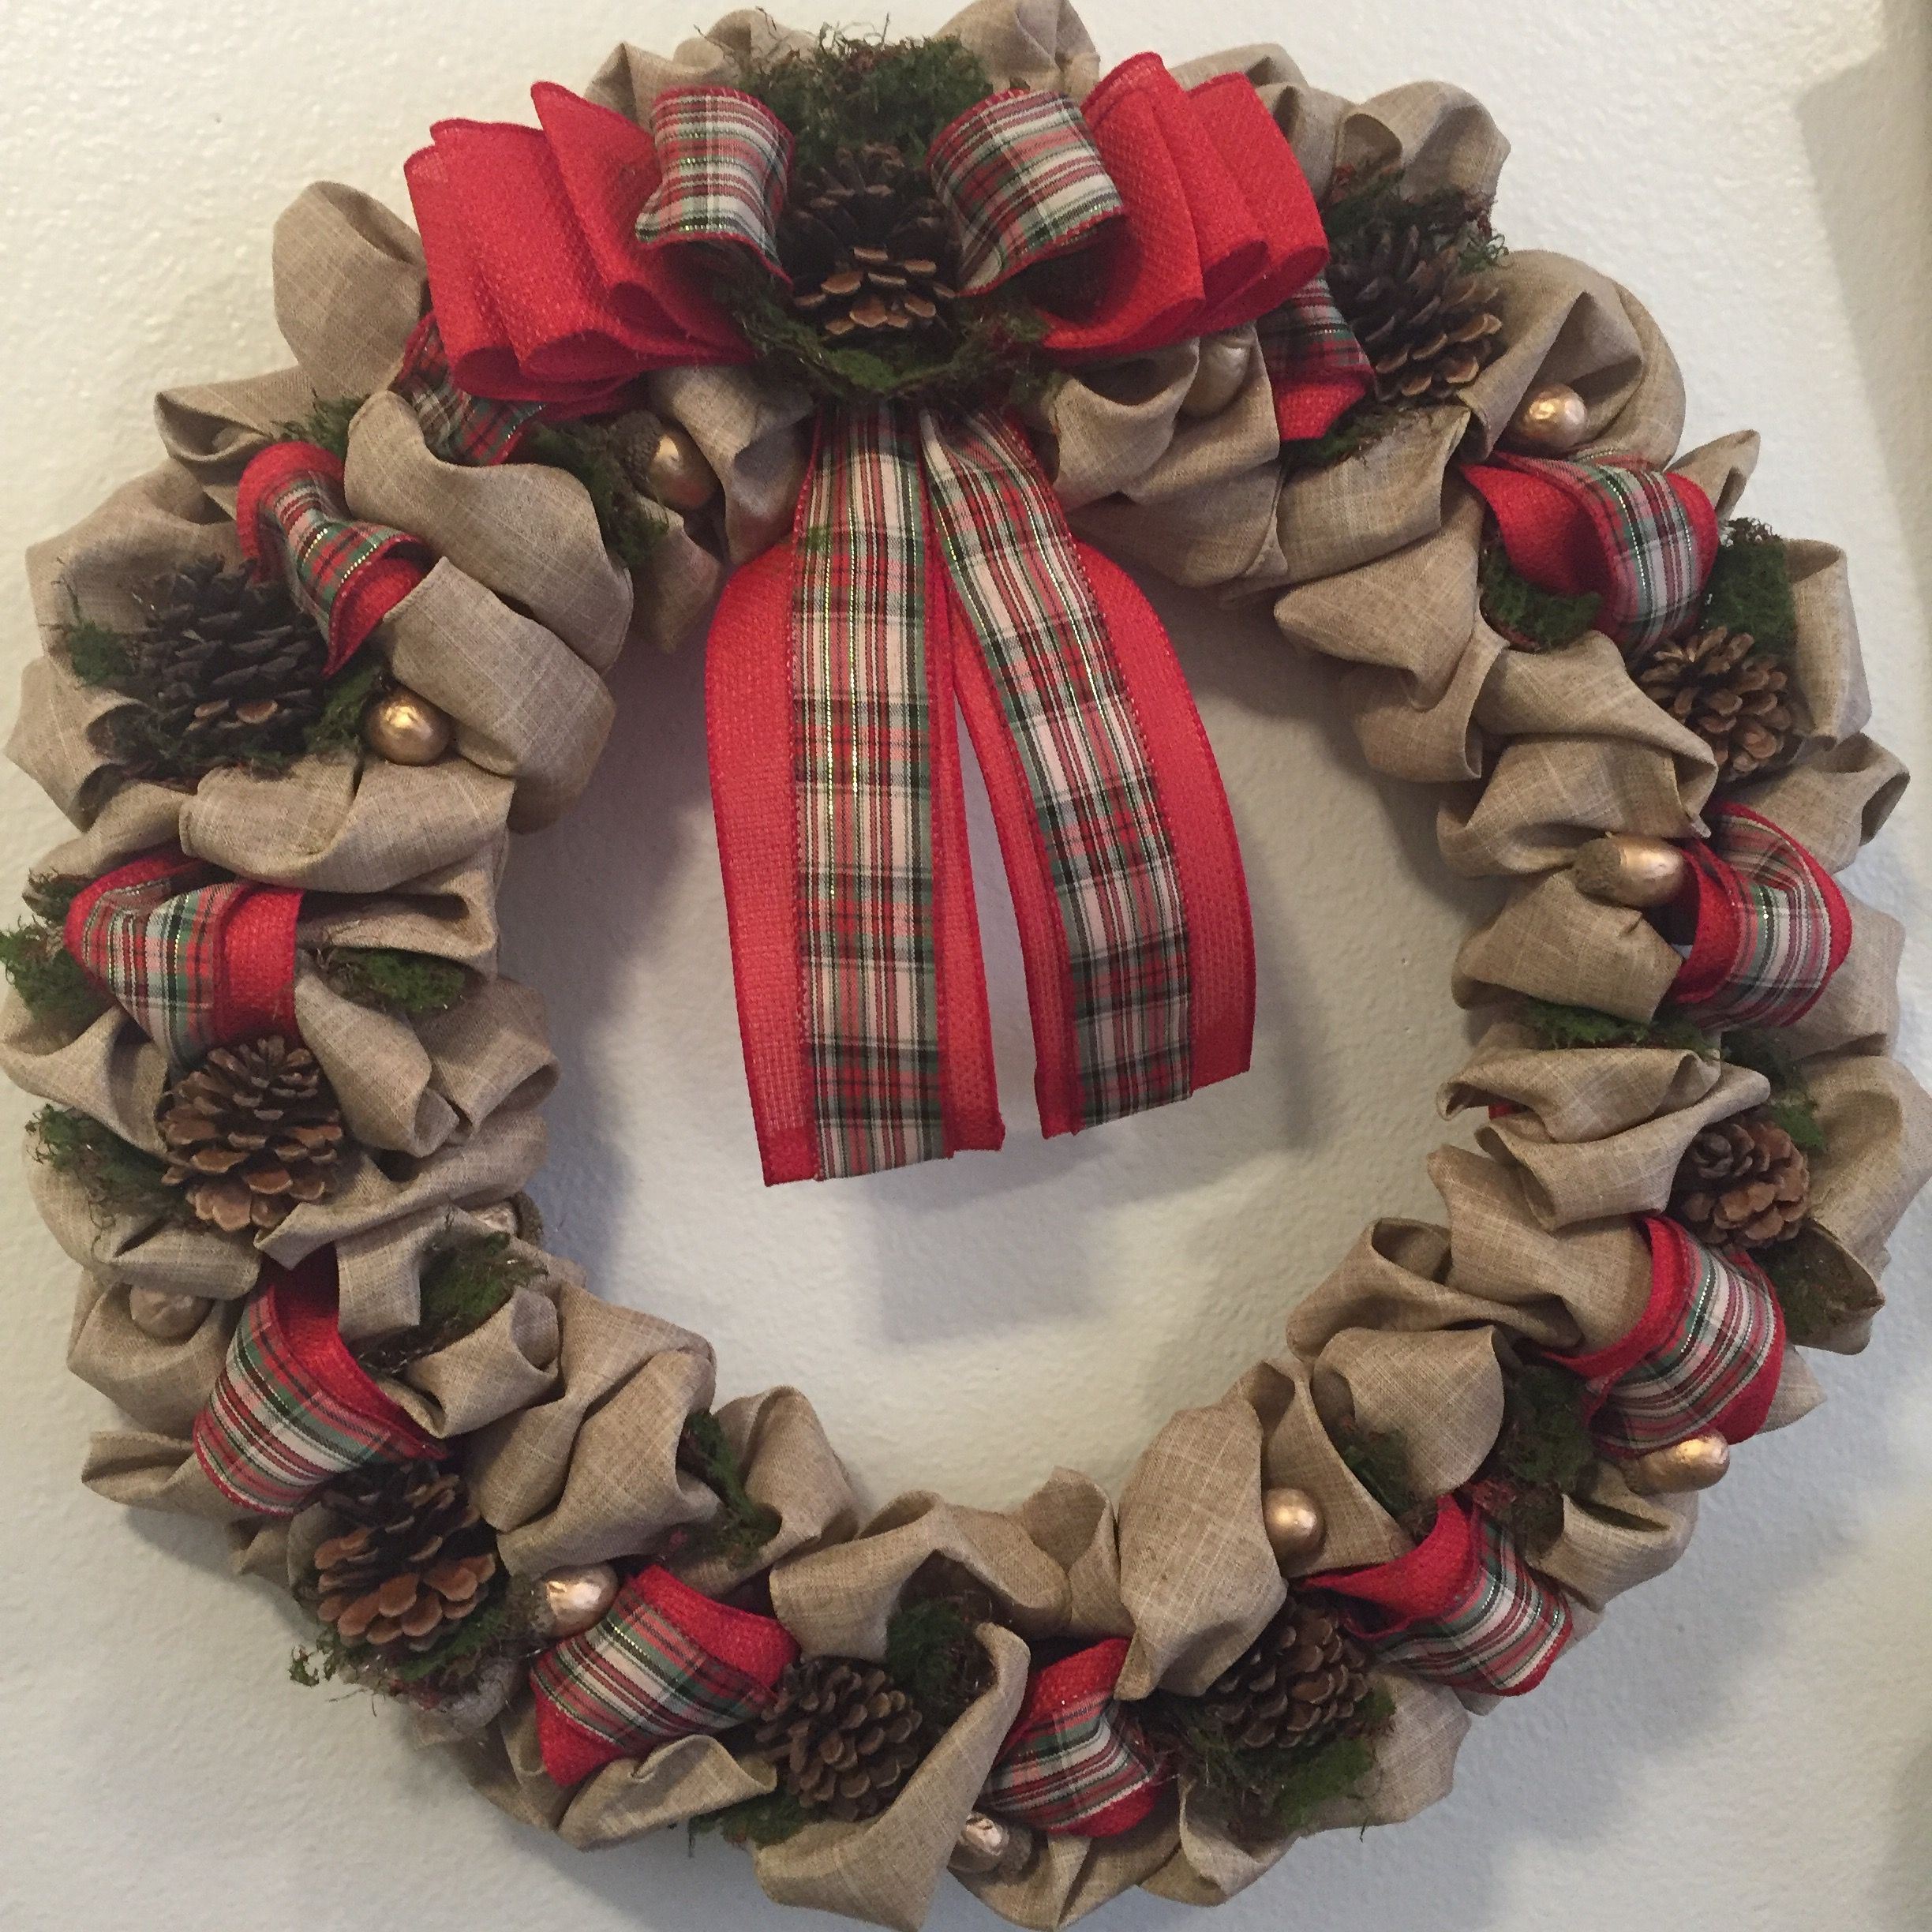 28+ Holiday decorating with burlap ideas